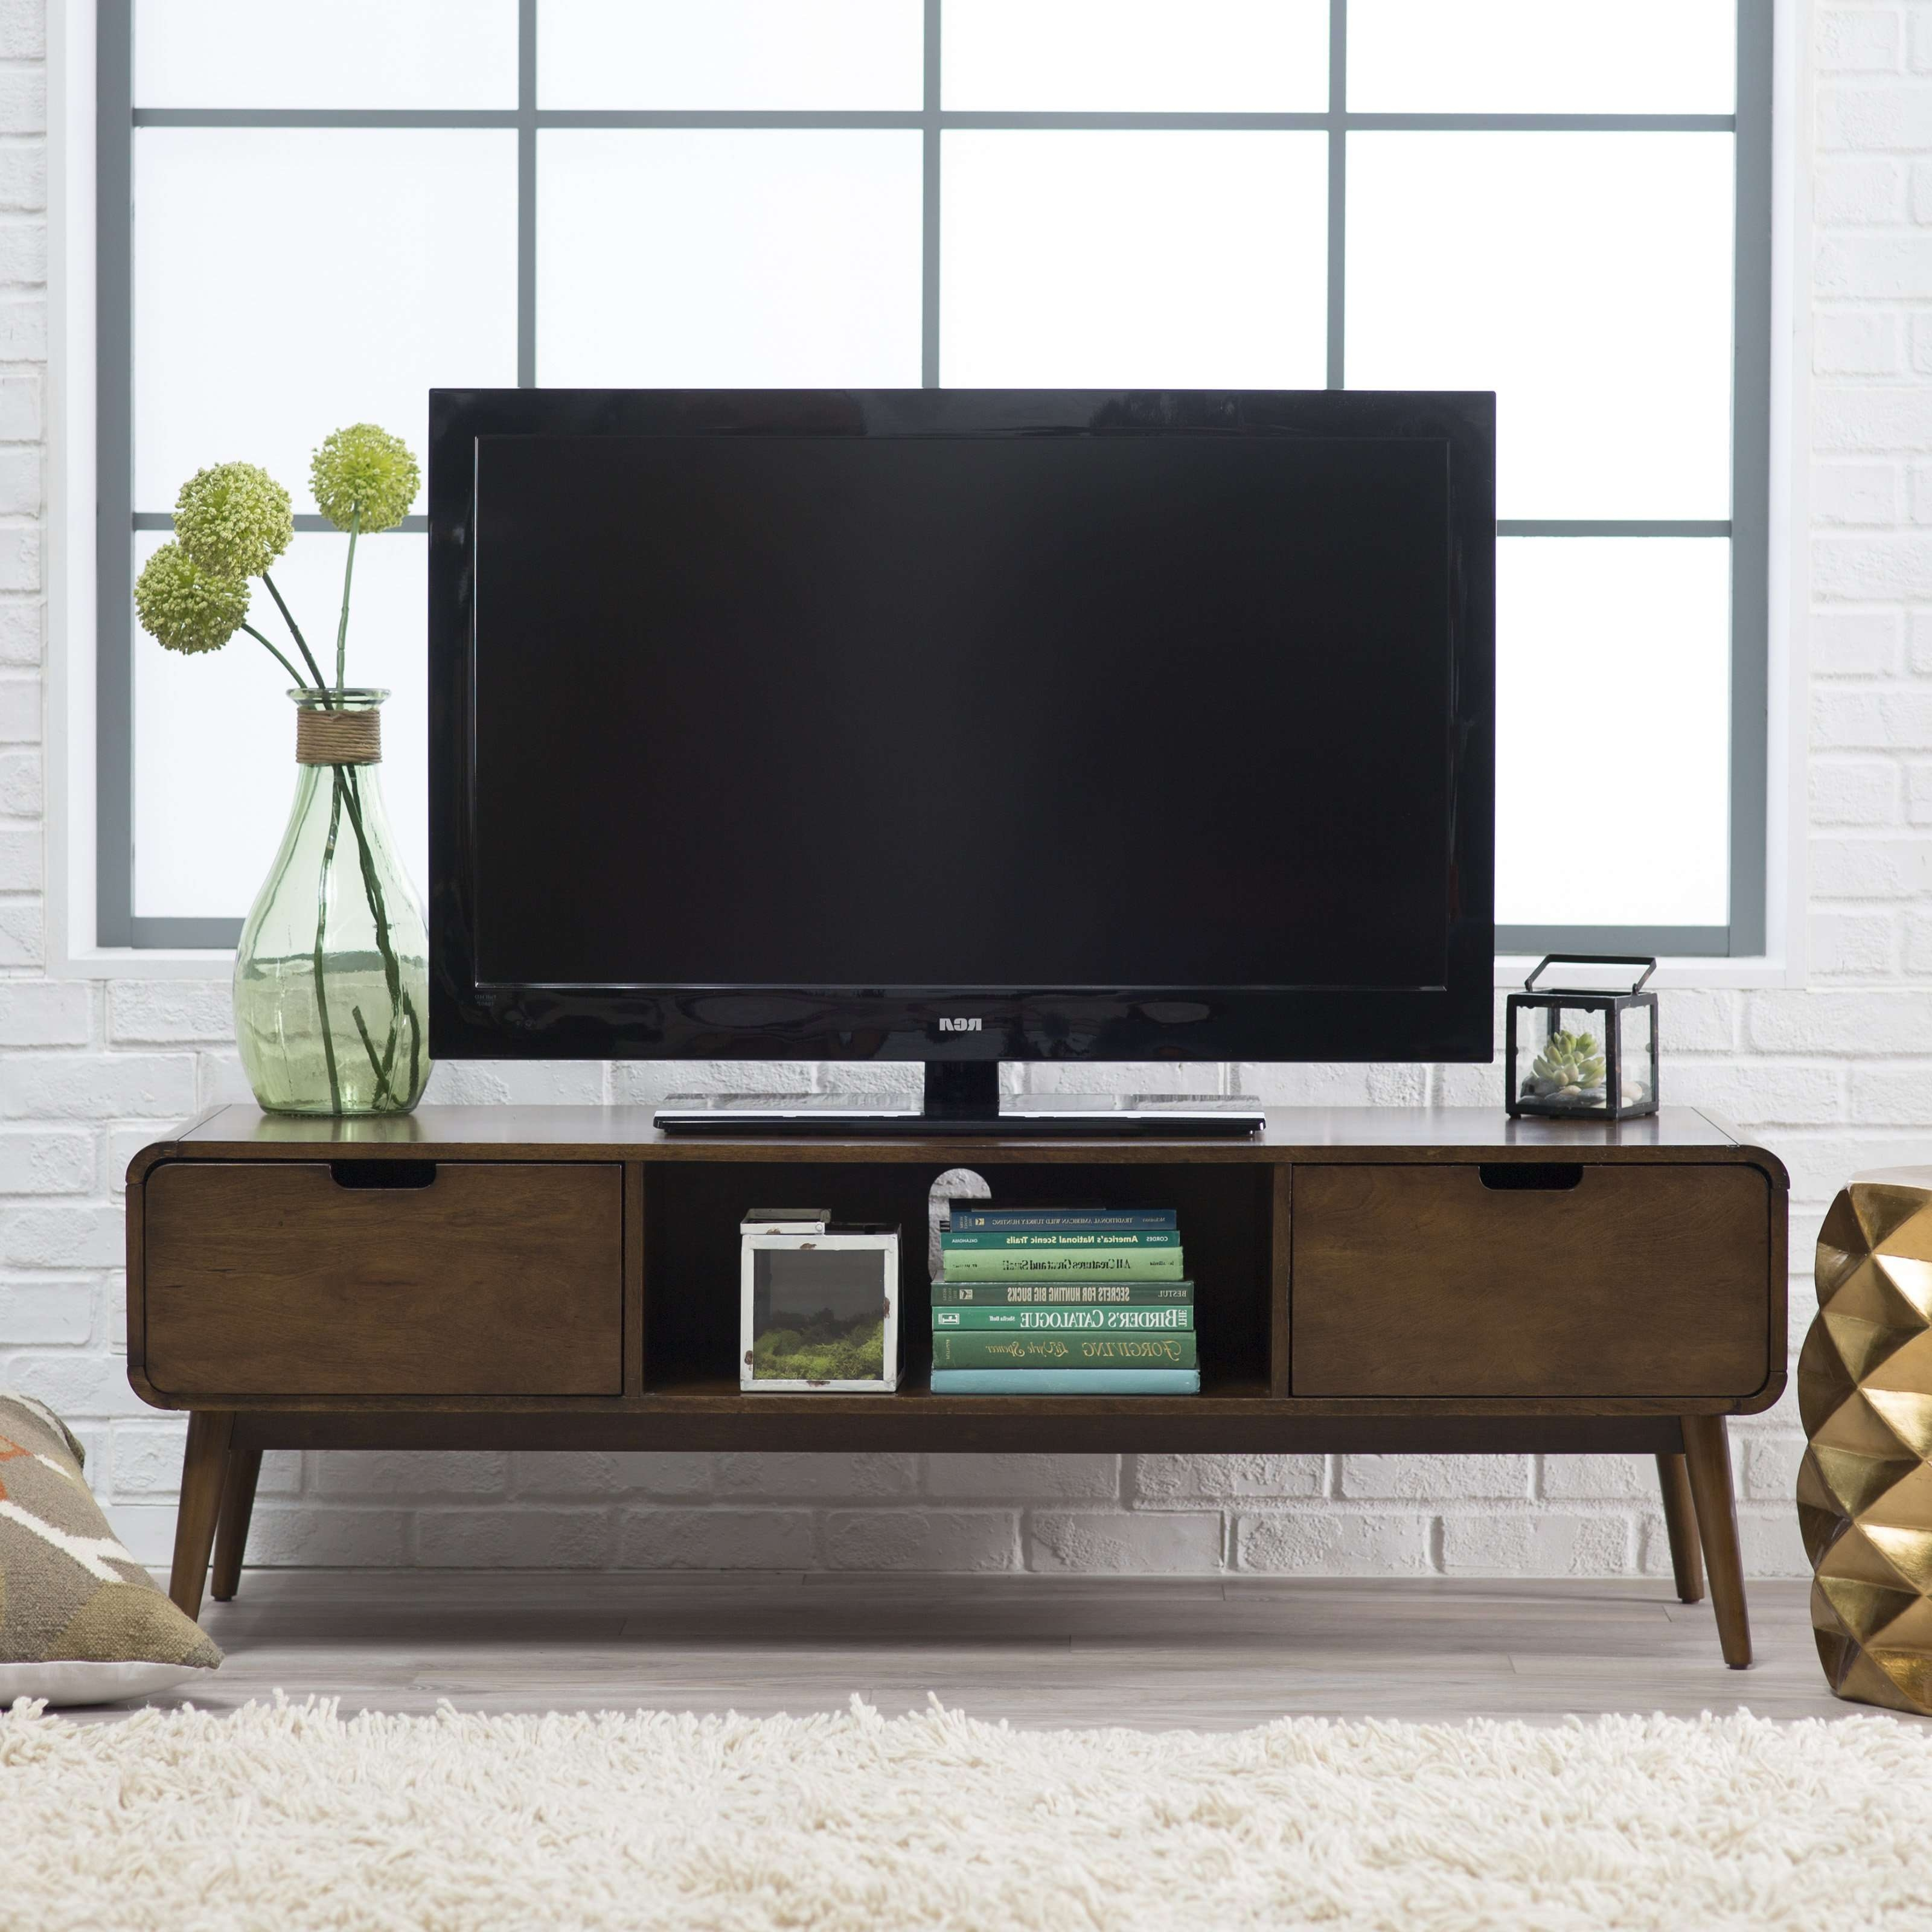 Belham Living Carter Mid Century Modern Tv Stand | Hayneedle For Modern Low Profile Tv Stands (View 6 of 15)